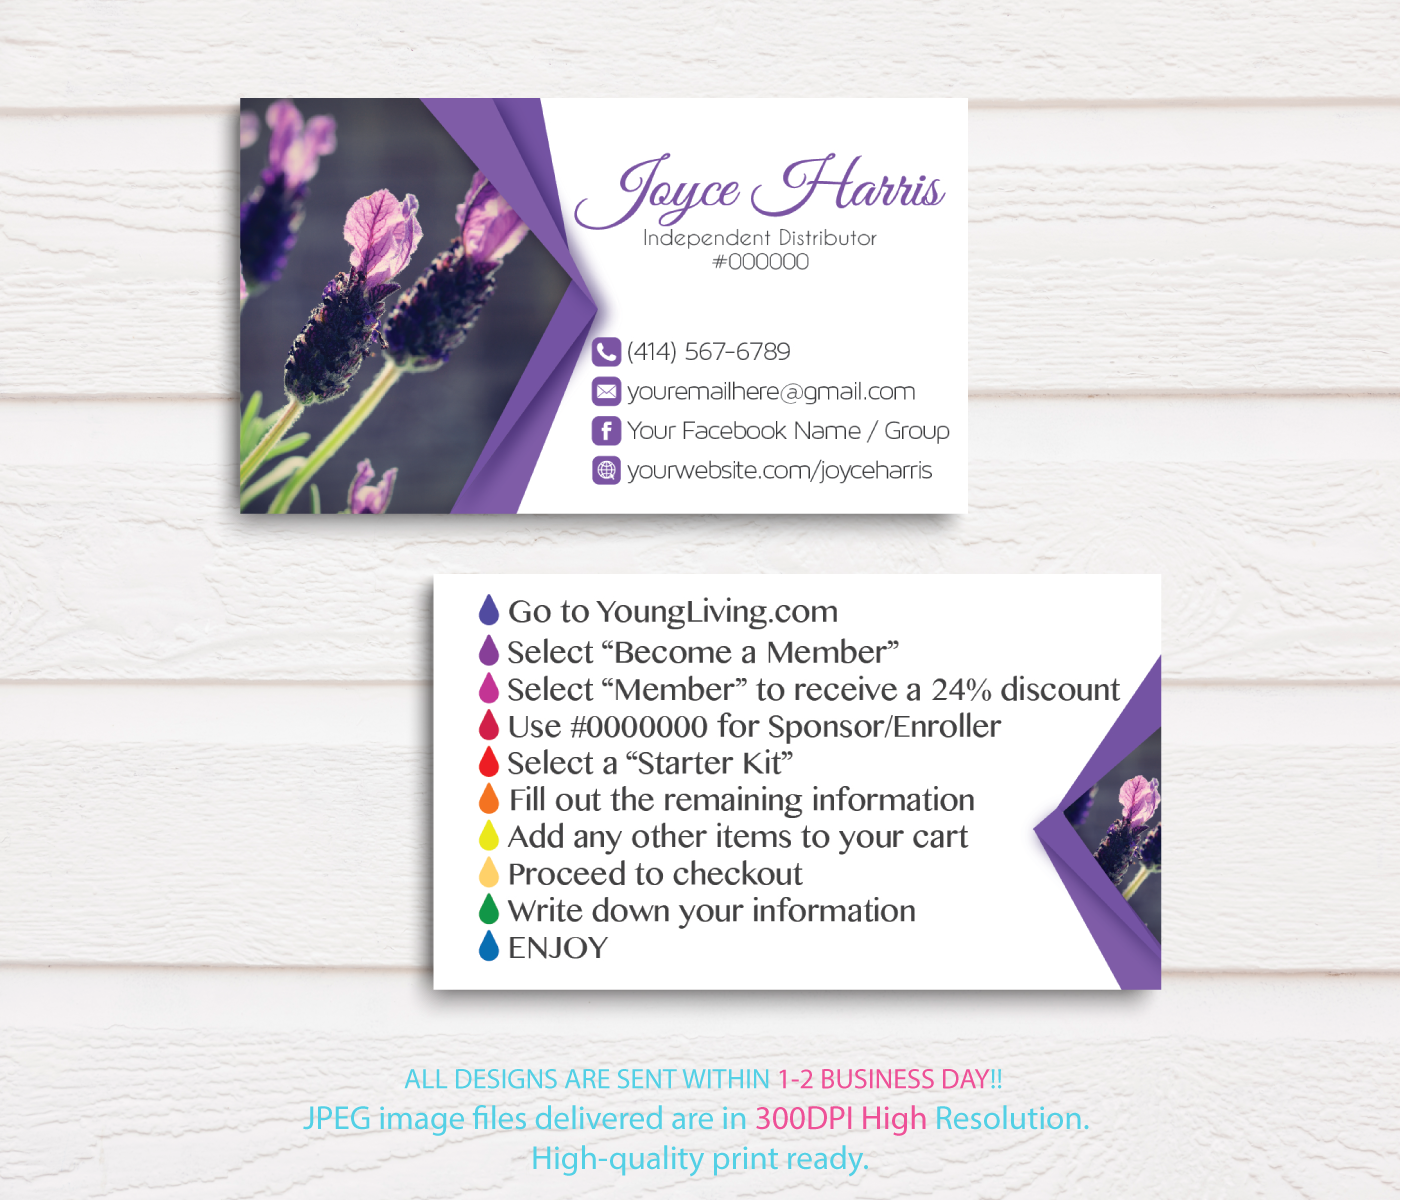 File Check Out Card young living business cards, personalized young living business card,  digital file card, yl12b